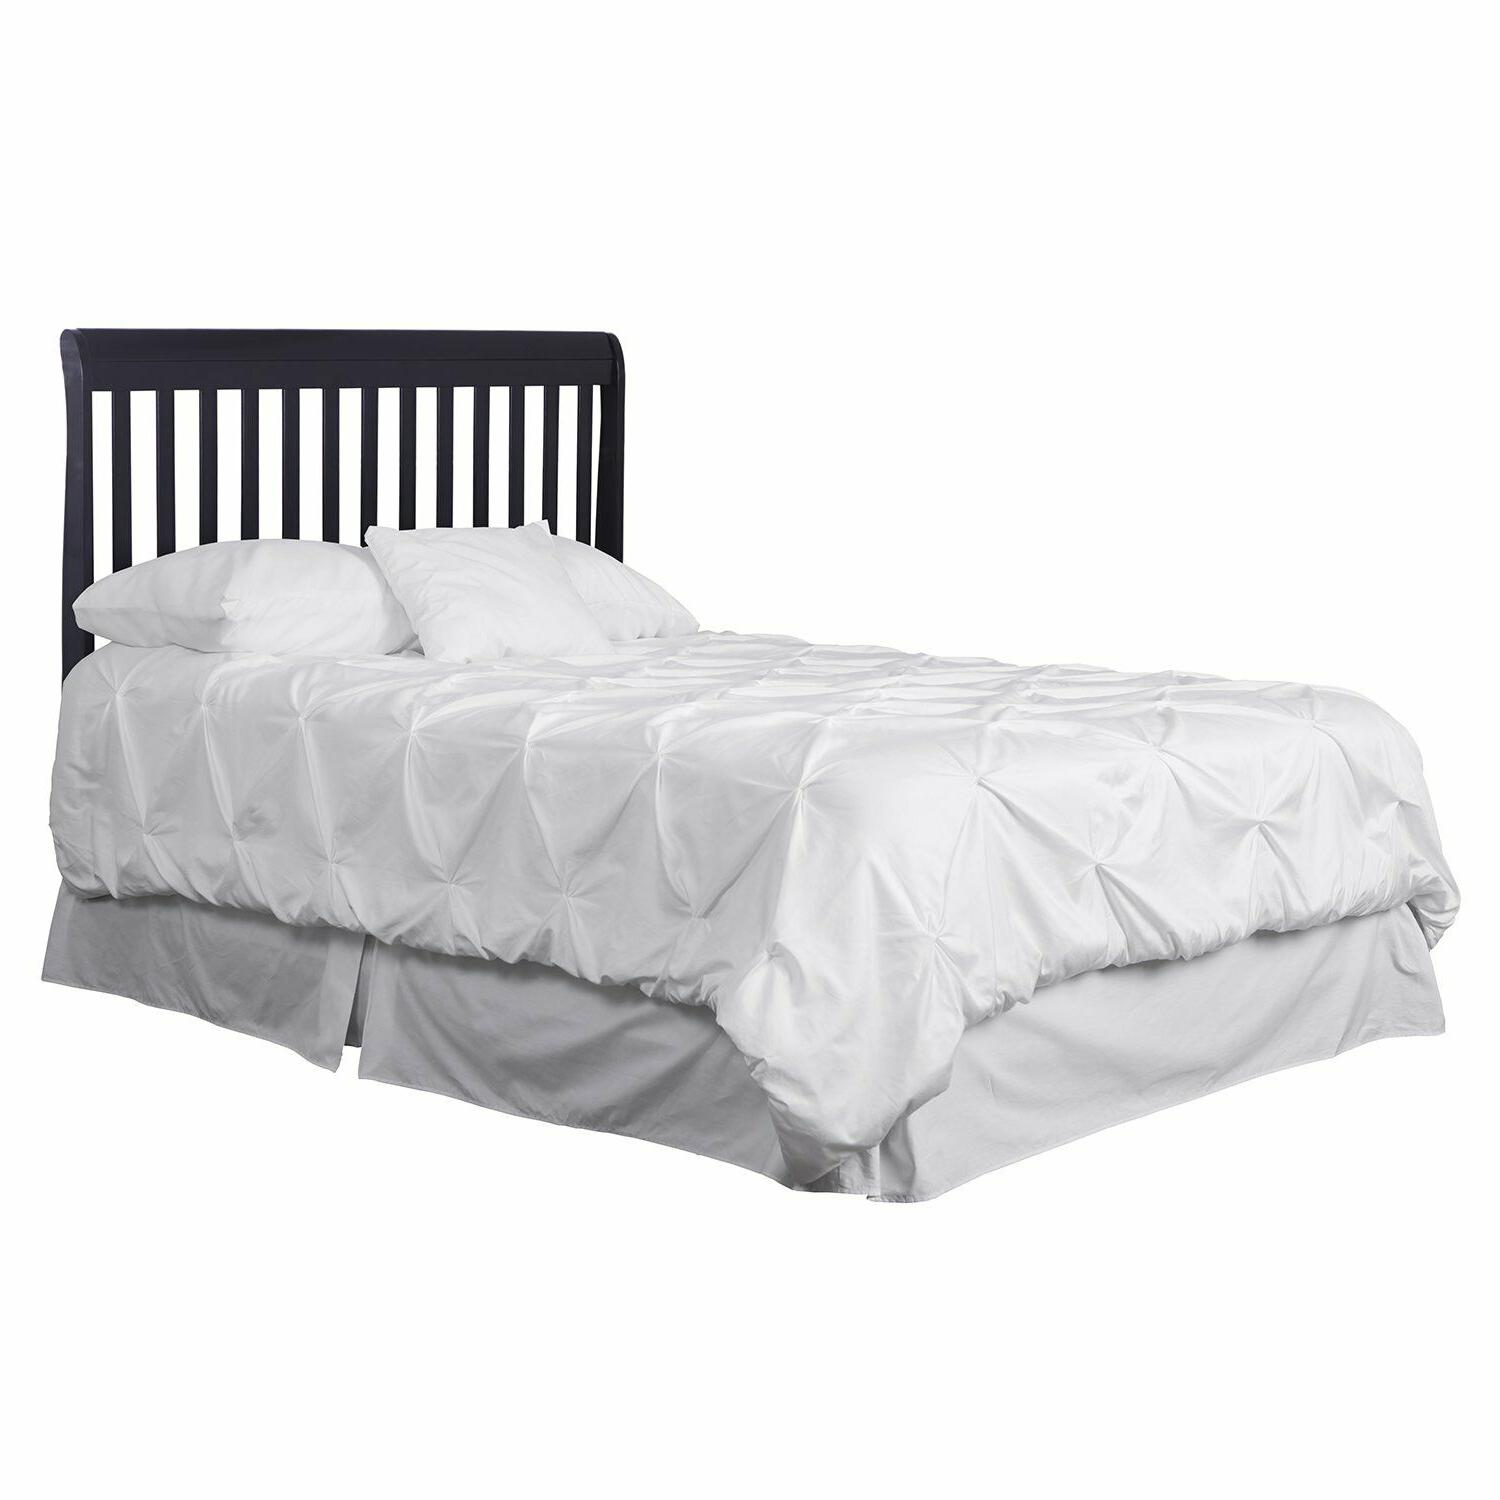 Convertible Baby Bed Full Size Nursery Furniture NEW